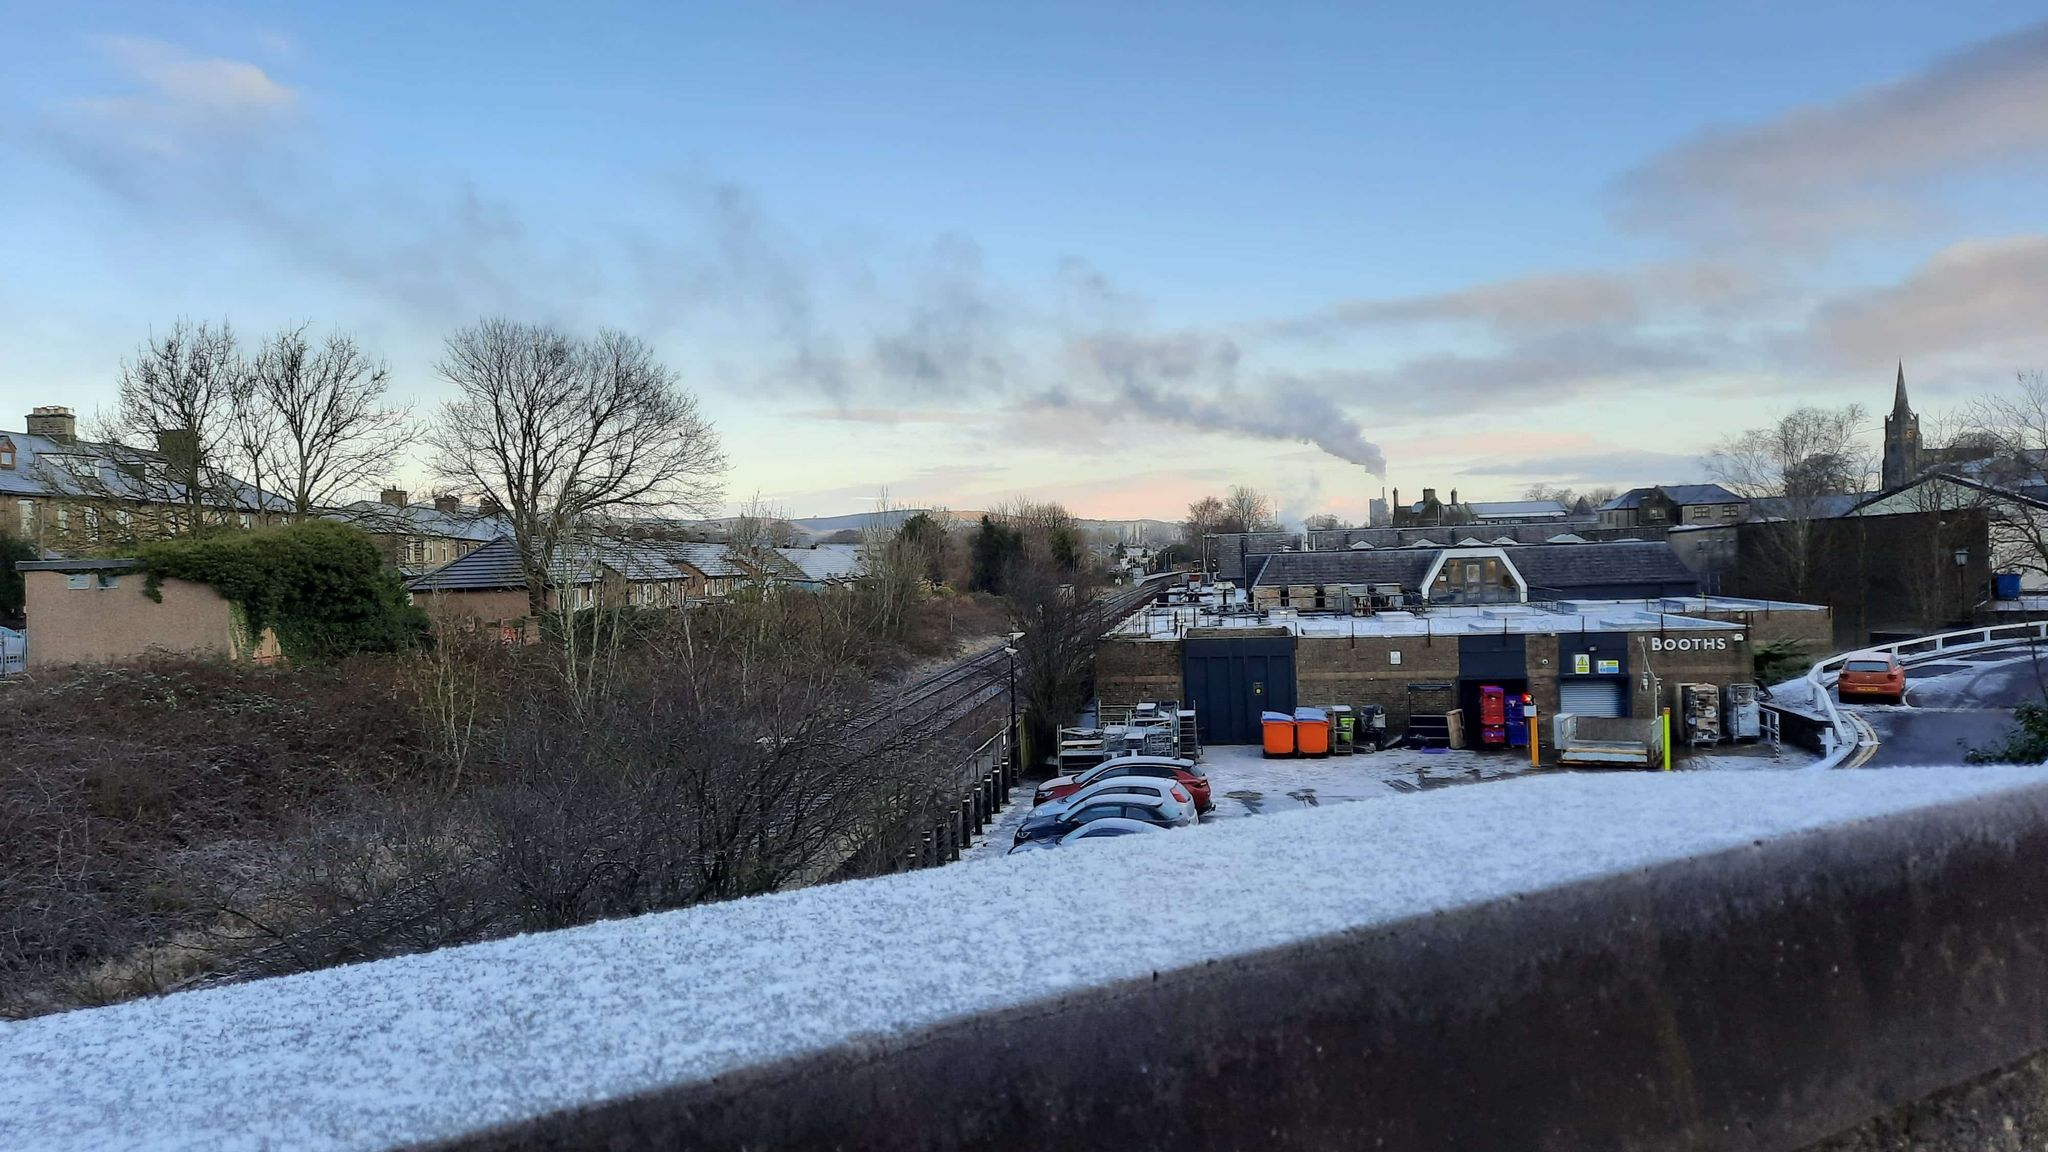 The smoke coming from Hanson Cement in Clitheroe